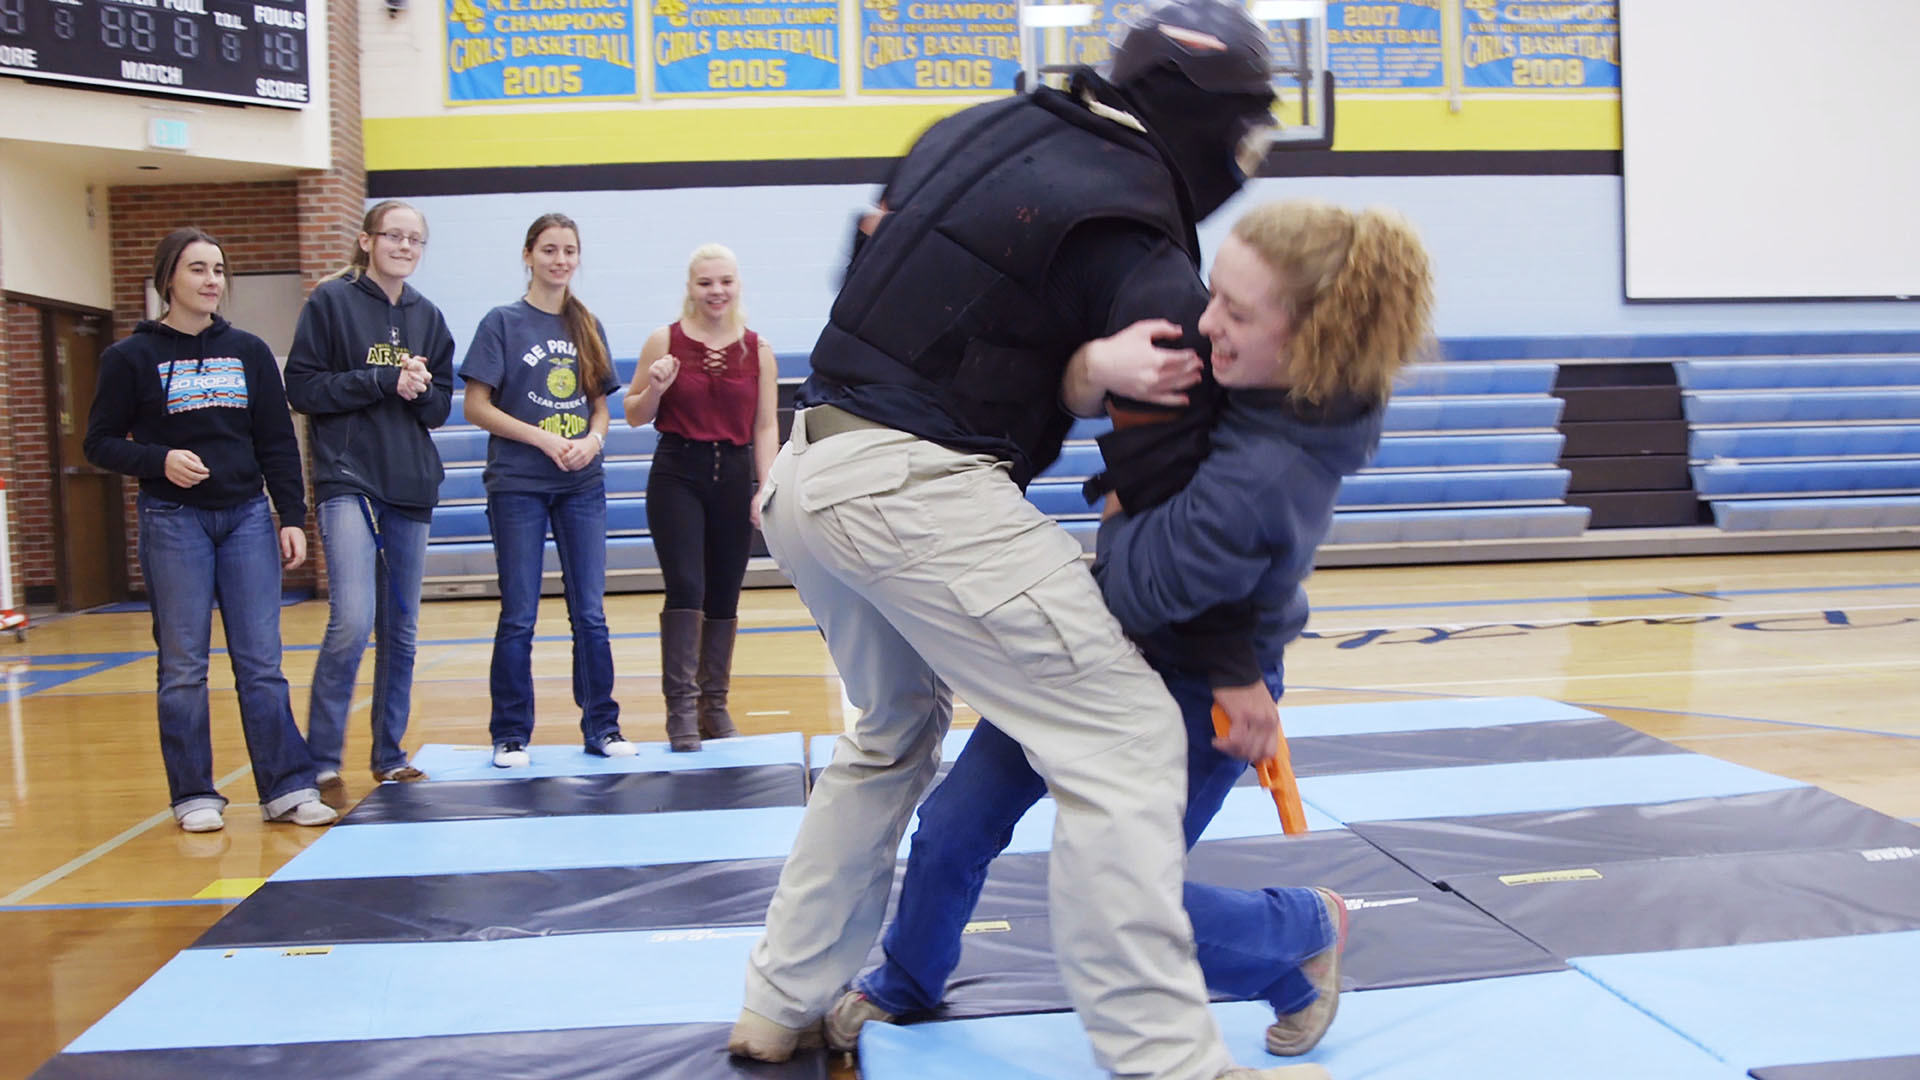 The drills we observed in Wyoming increased in escalation as the students got older. Here, a high school student was asked to practice tackling a trainer armed with a fake gun.